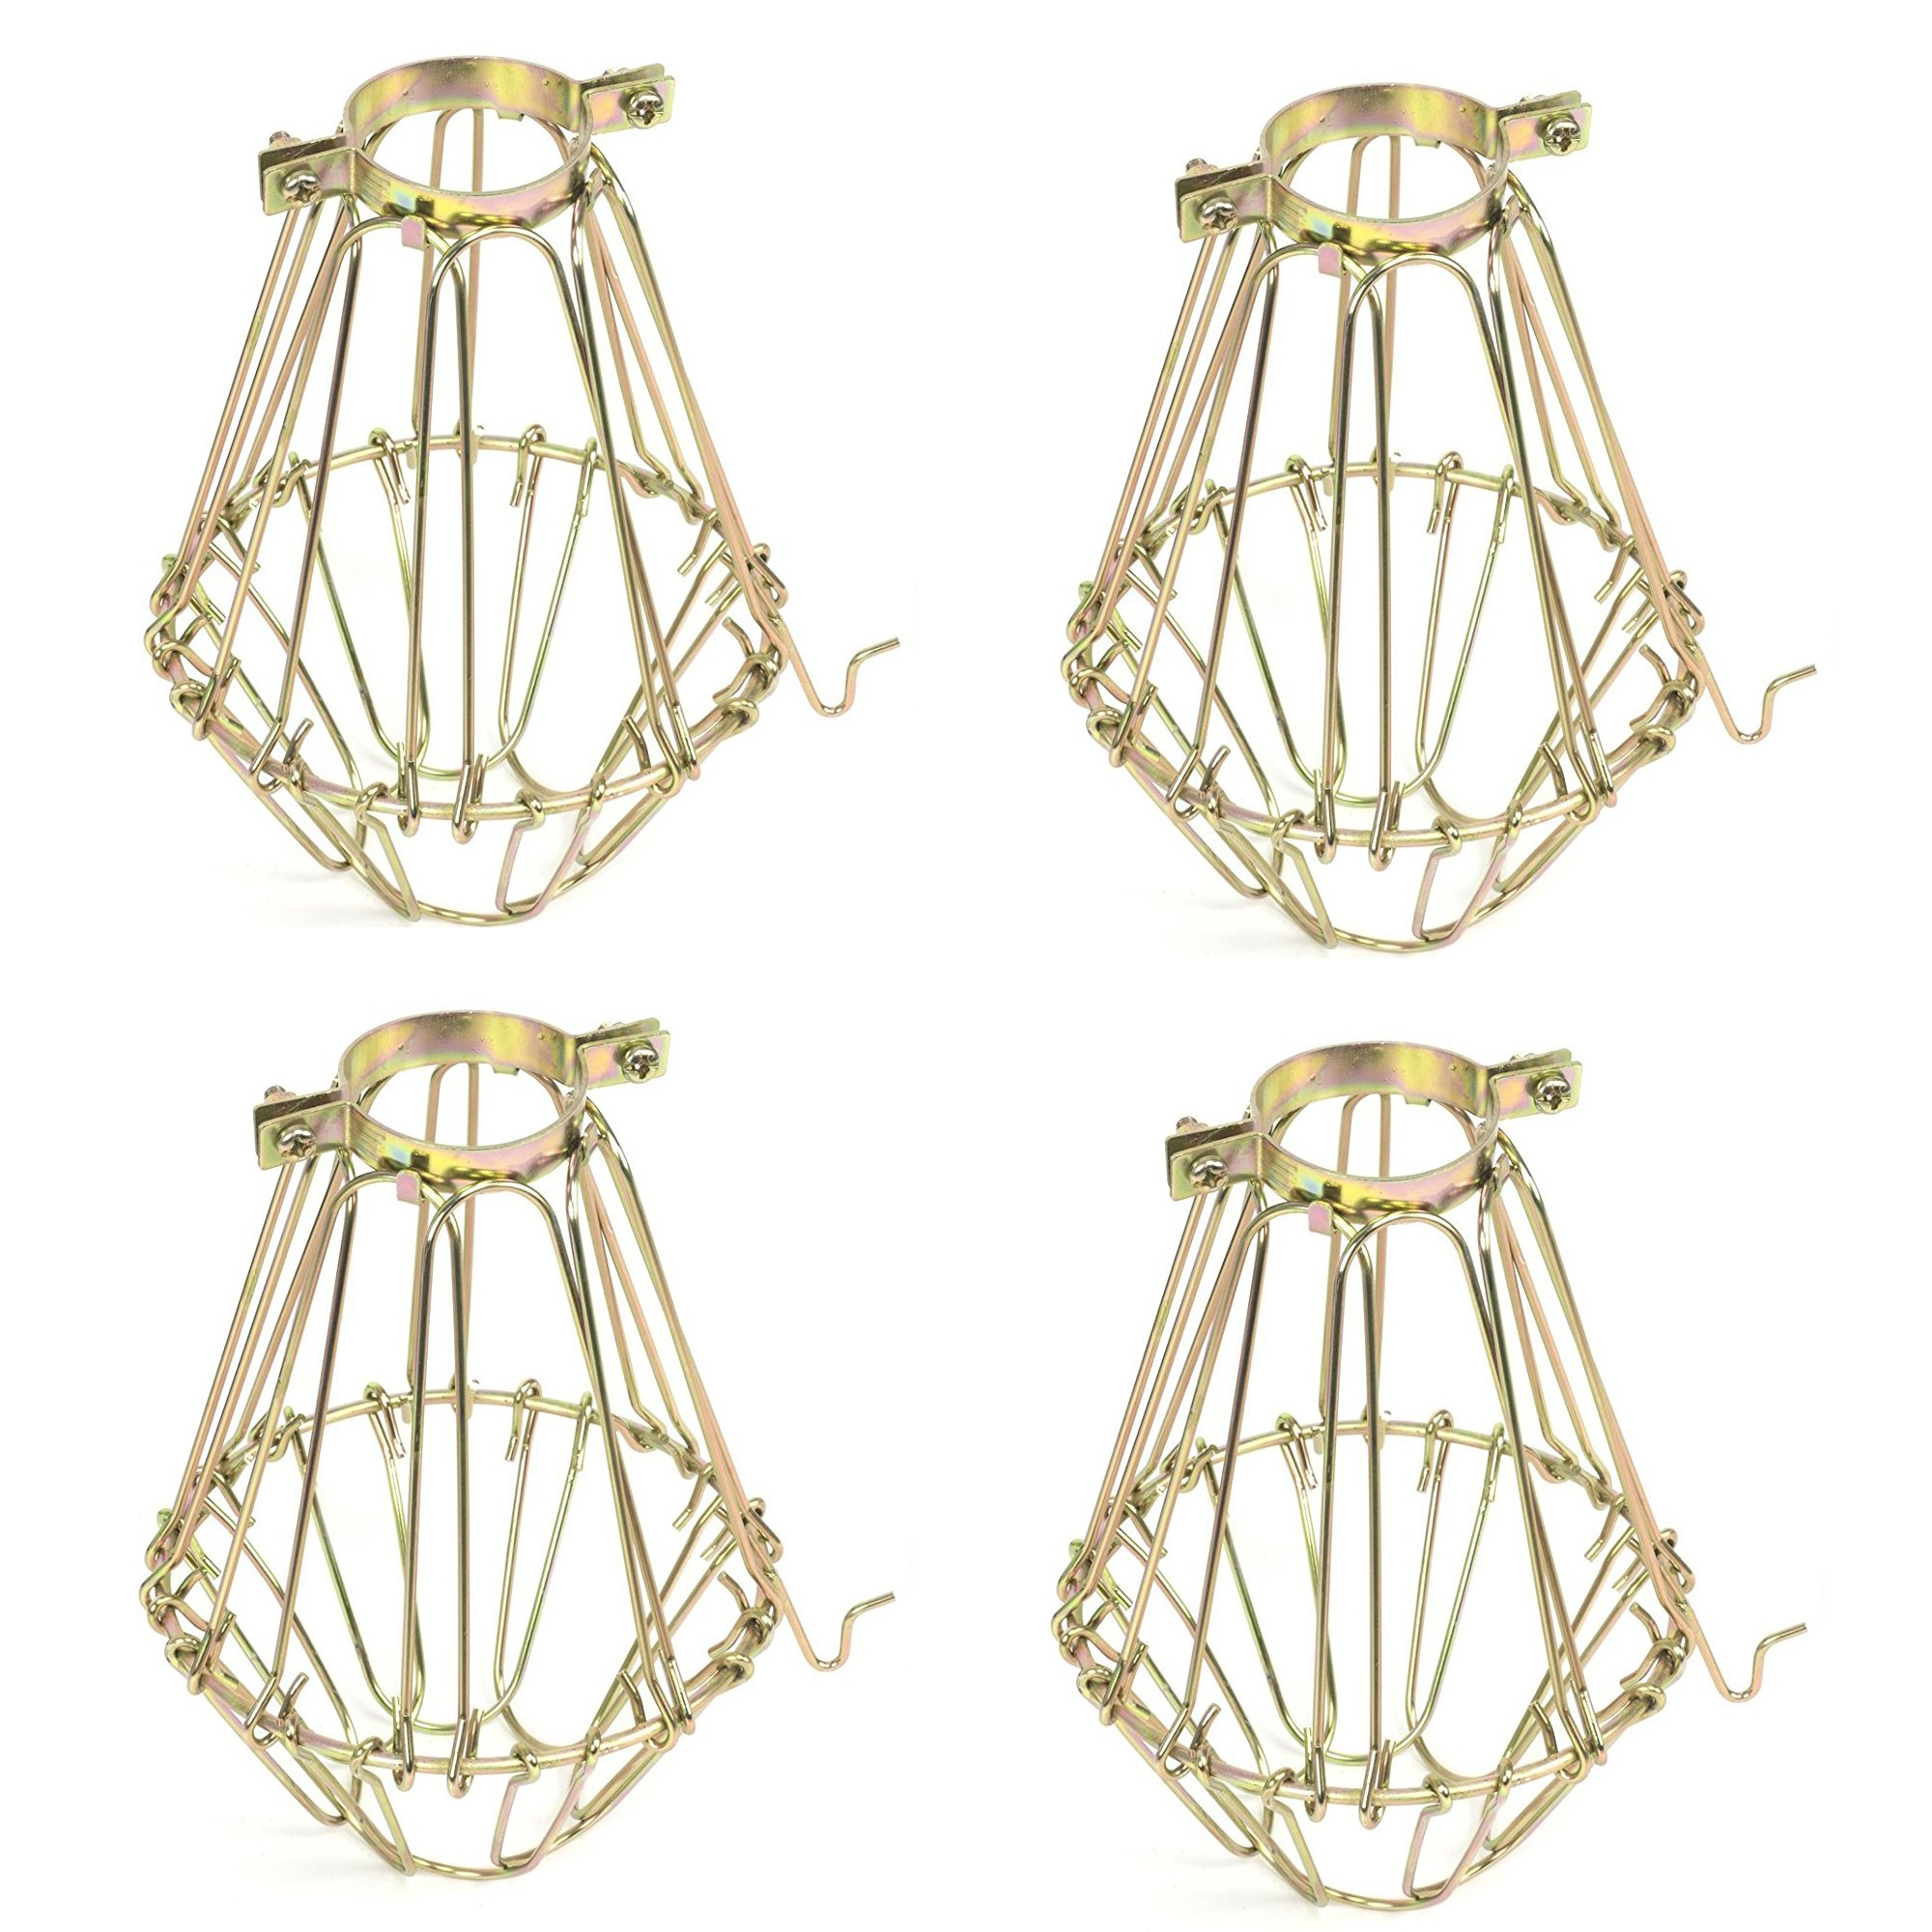 Set of 4 Industrial Vintage Style Black Hanging Pendant Light Fixture Metal Wire Cage , Lamp Guard, Adjustable Cage Openings to Different Styles (Brass)